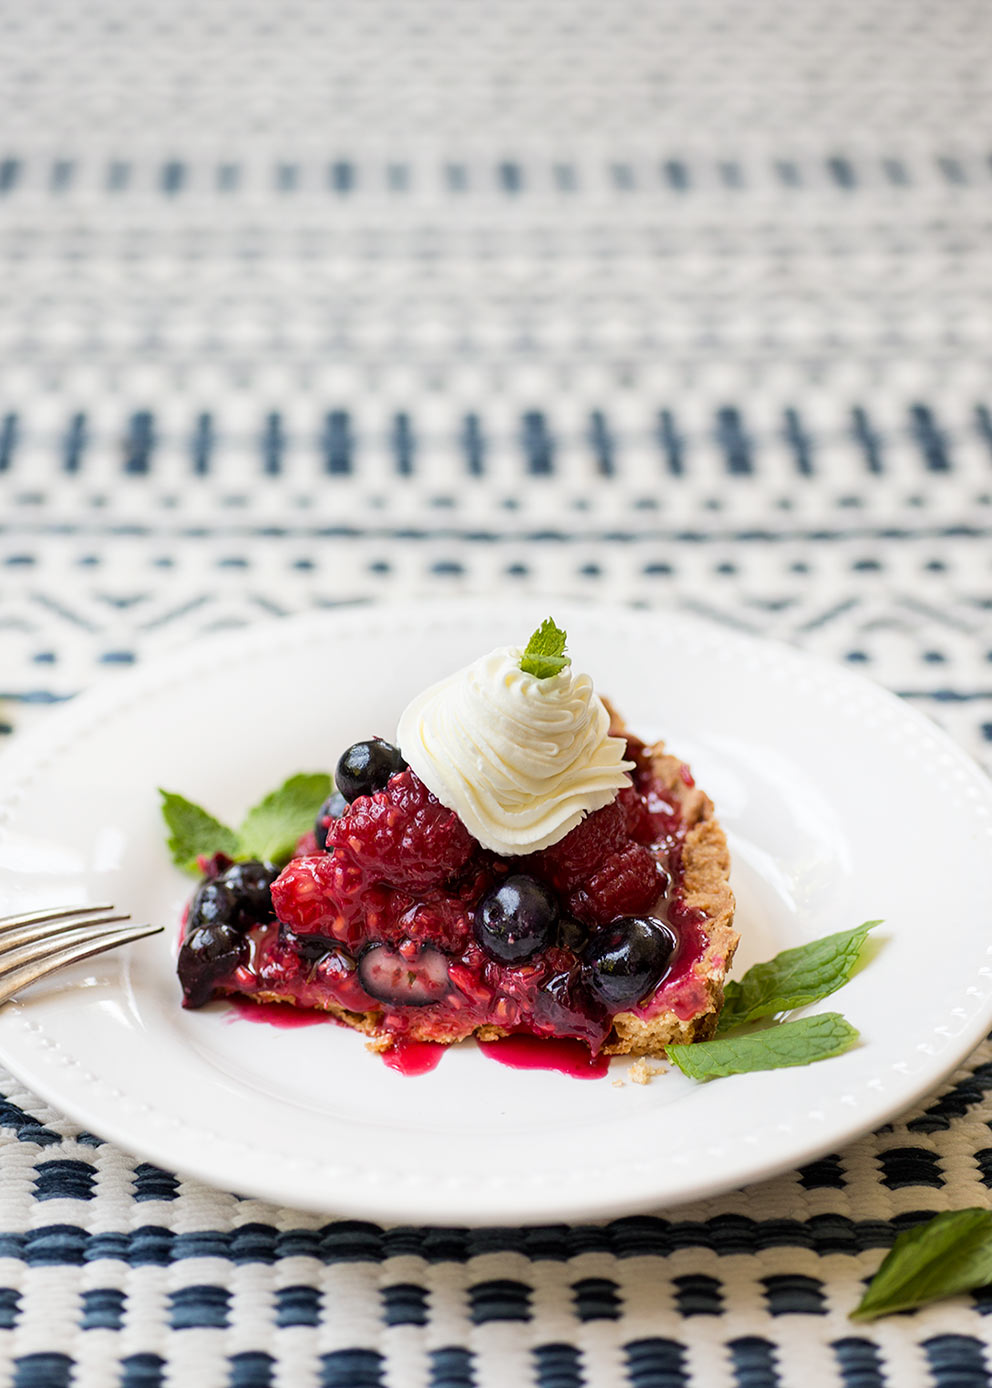 Raspberry Blueberry Tart: Raspberries, blueberries and whipped cream piled high in a shortbread cookie crust...the perfect red, white and blue dessert!